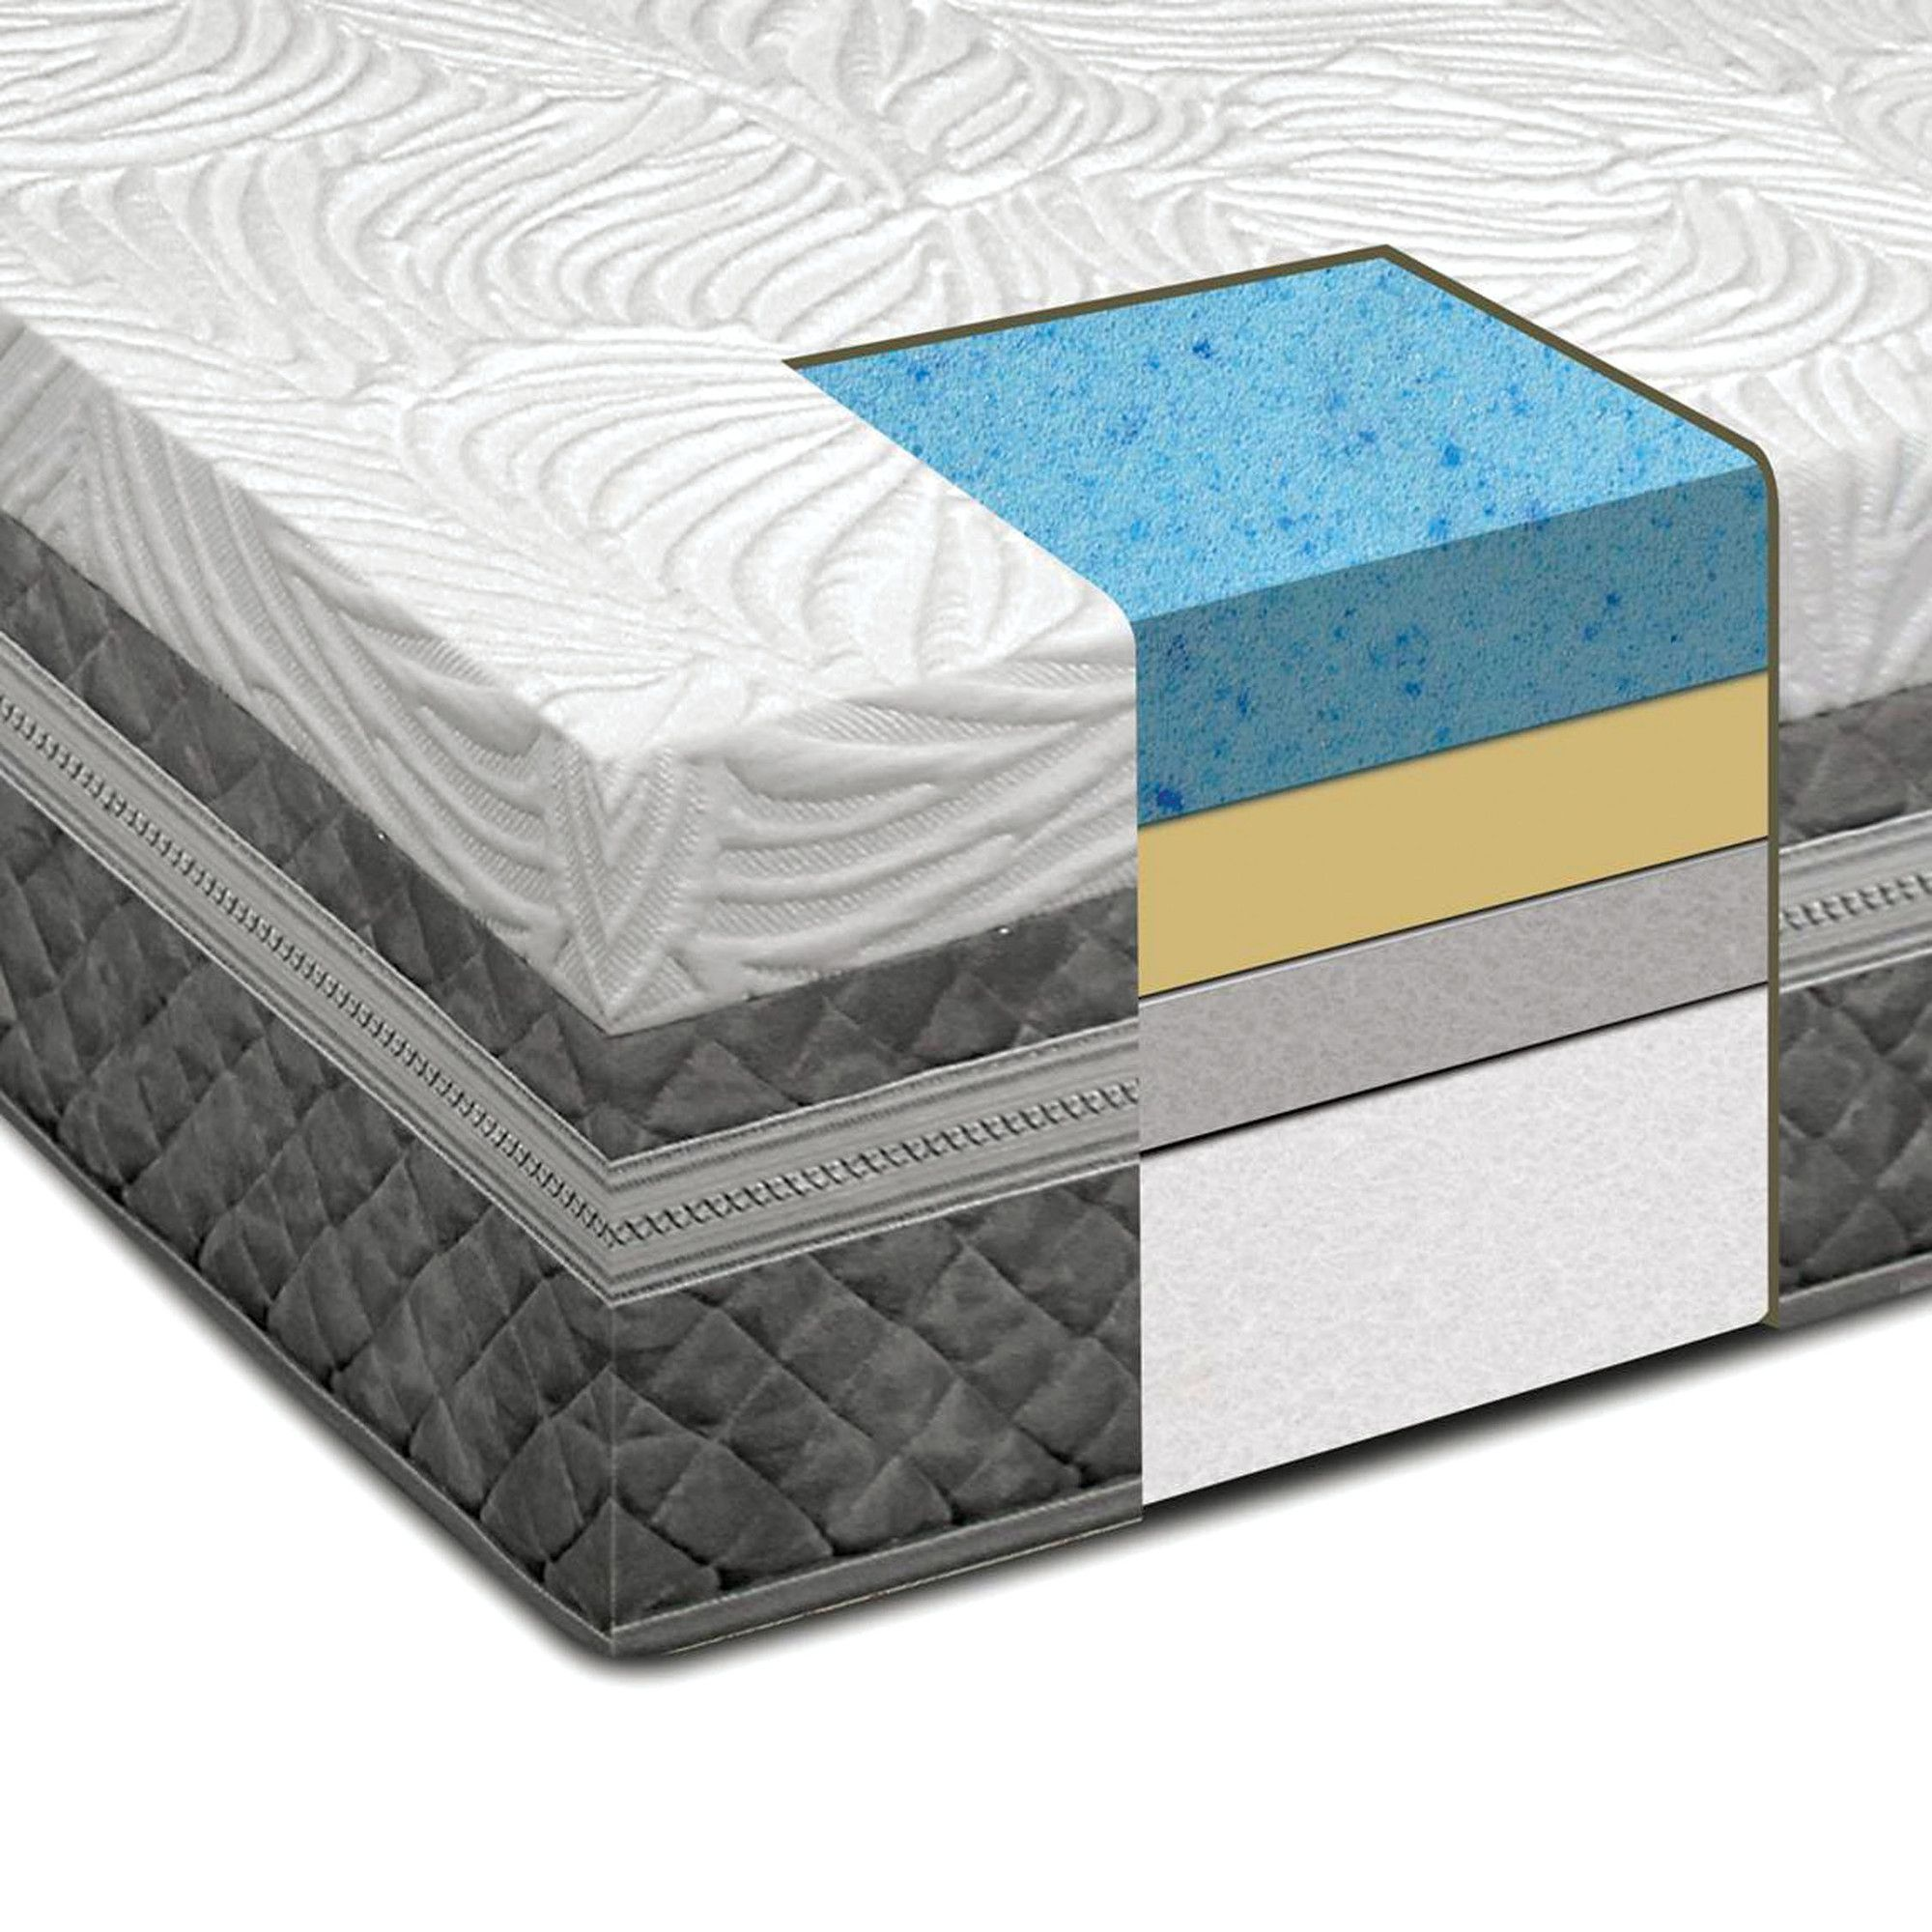 "Risetta 12"" Gel Memory Foam Mattress"